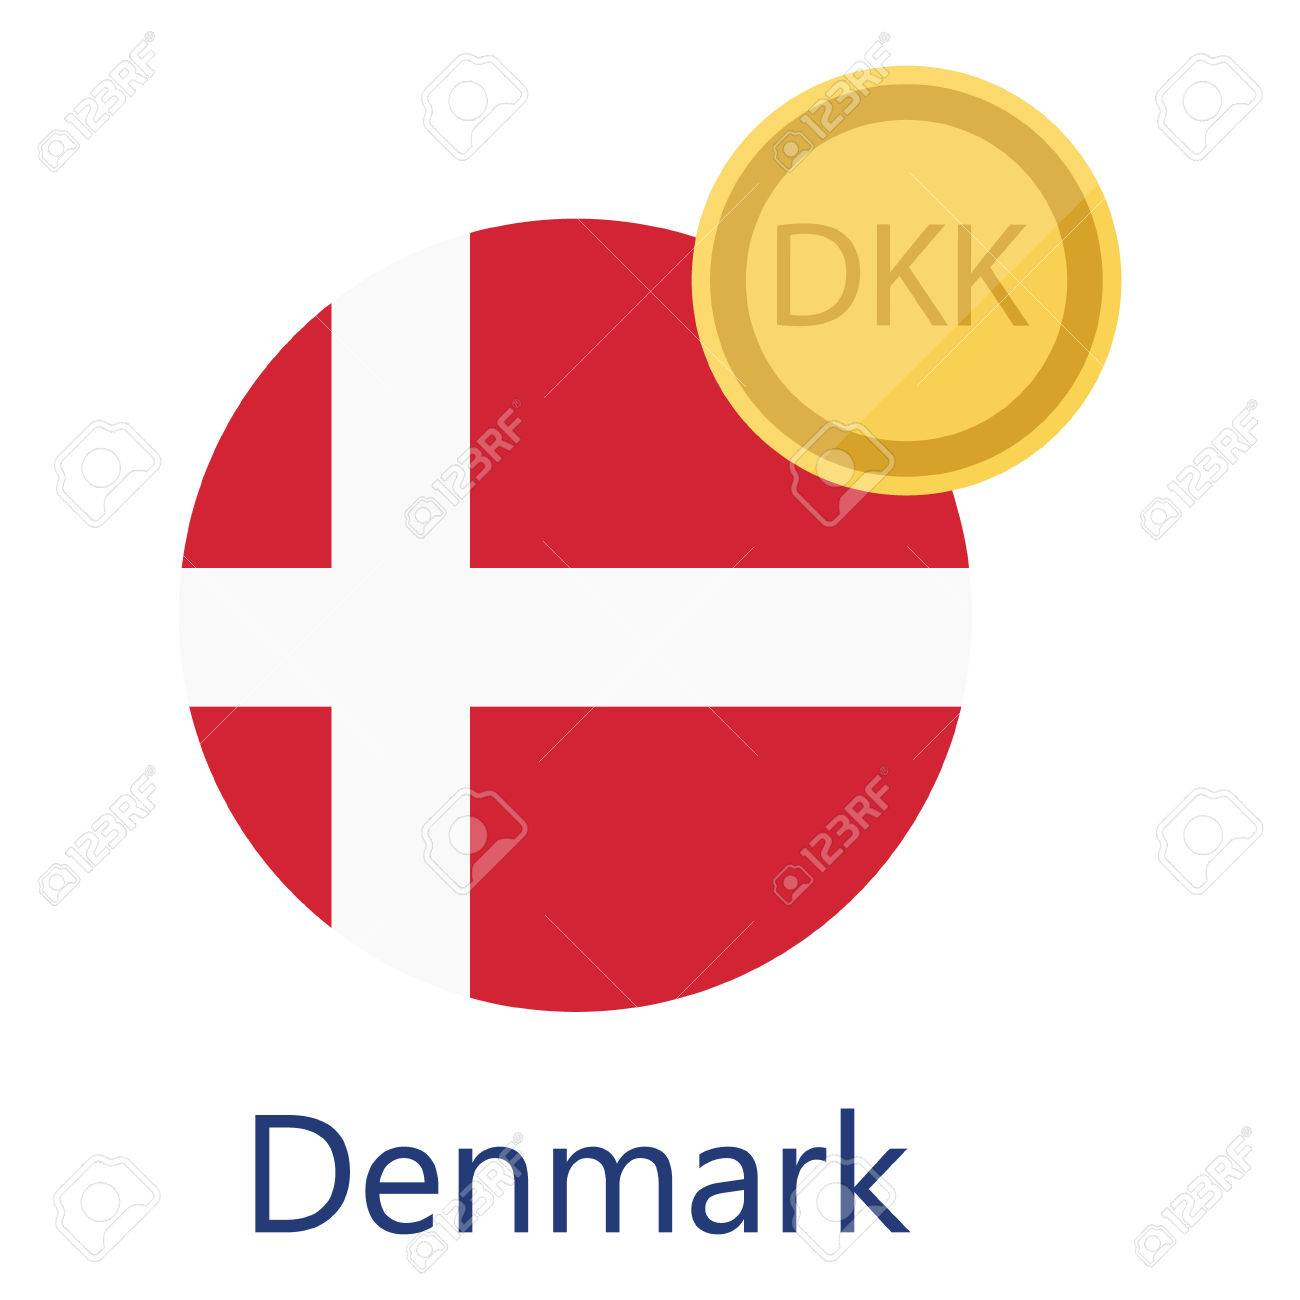 Vector illustration denmark round flag and currency symbols dkk vector illustration denmark round flag and currency symbols dkk danish krone stock vector 84759738 biocorpaavc Image collections